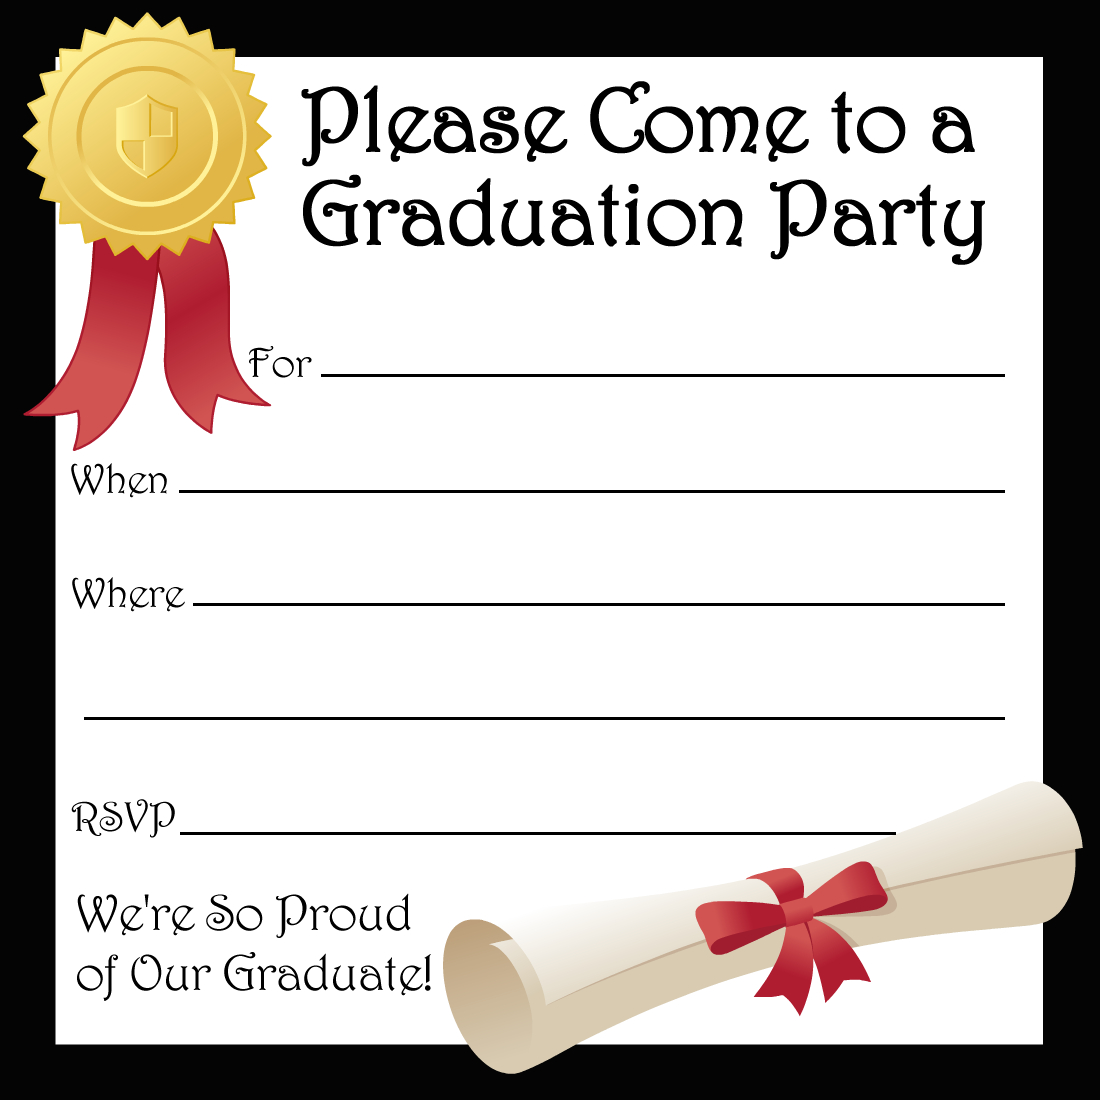 Free Printable Graduation Party Invitations | High School Graduation - Free Printable Graduation Party Invitations 2014